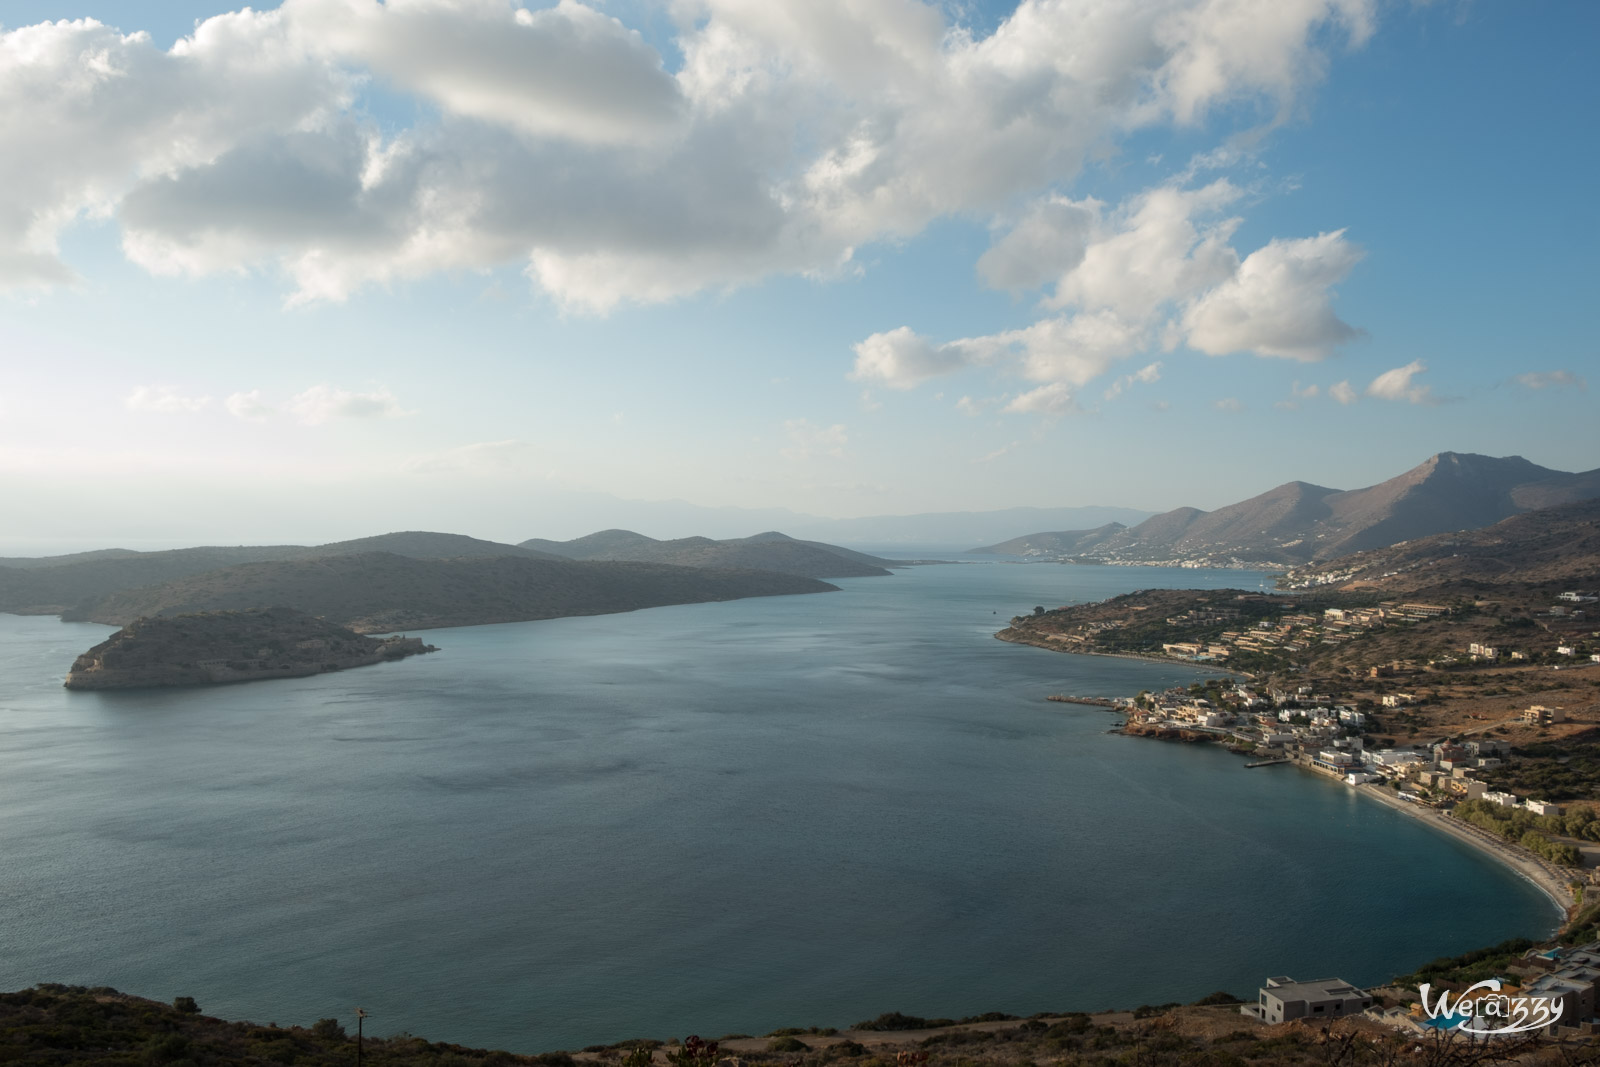 Crete, Spinalonga Island, road-trip